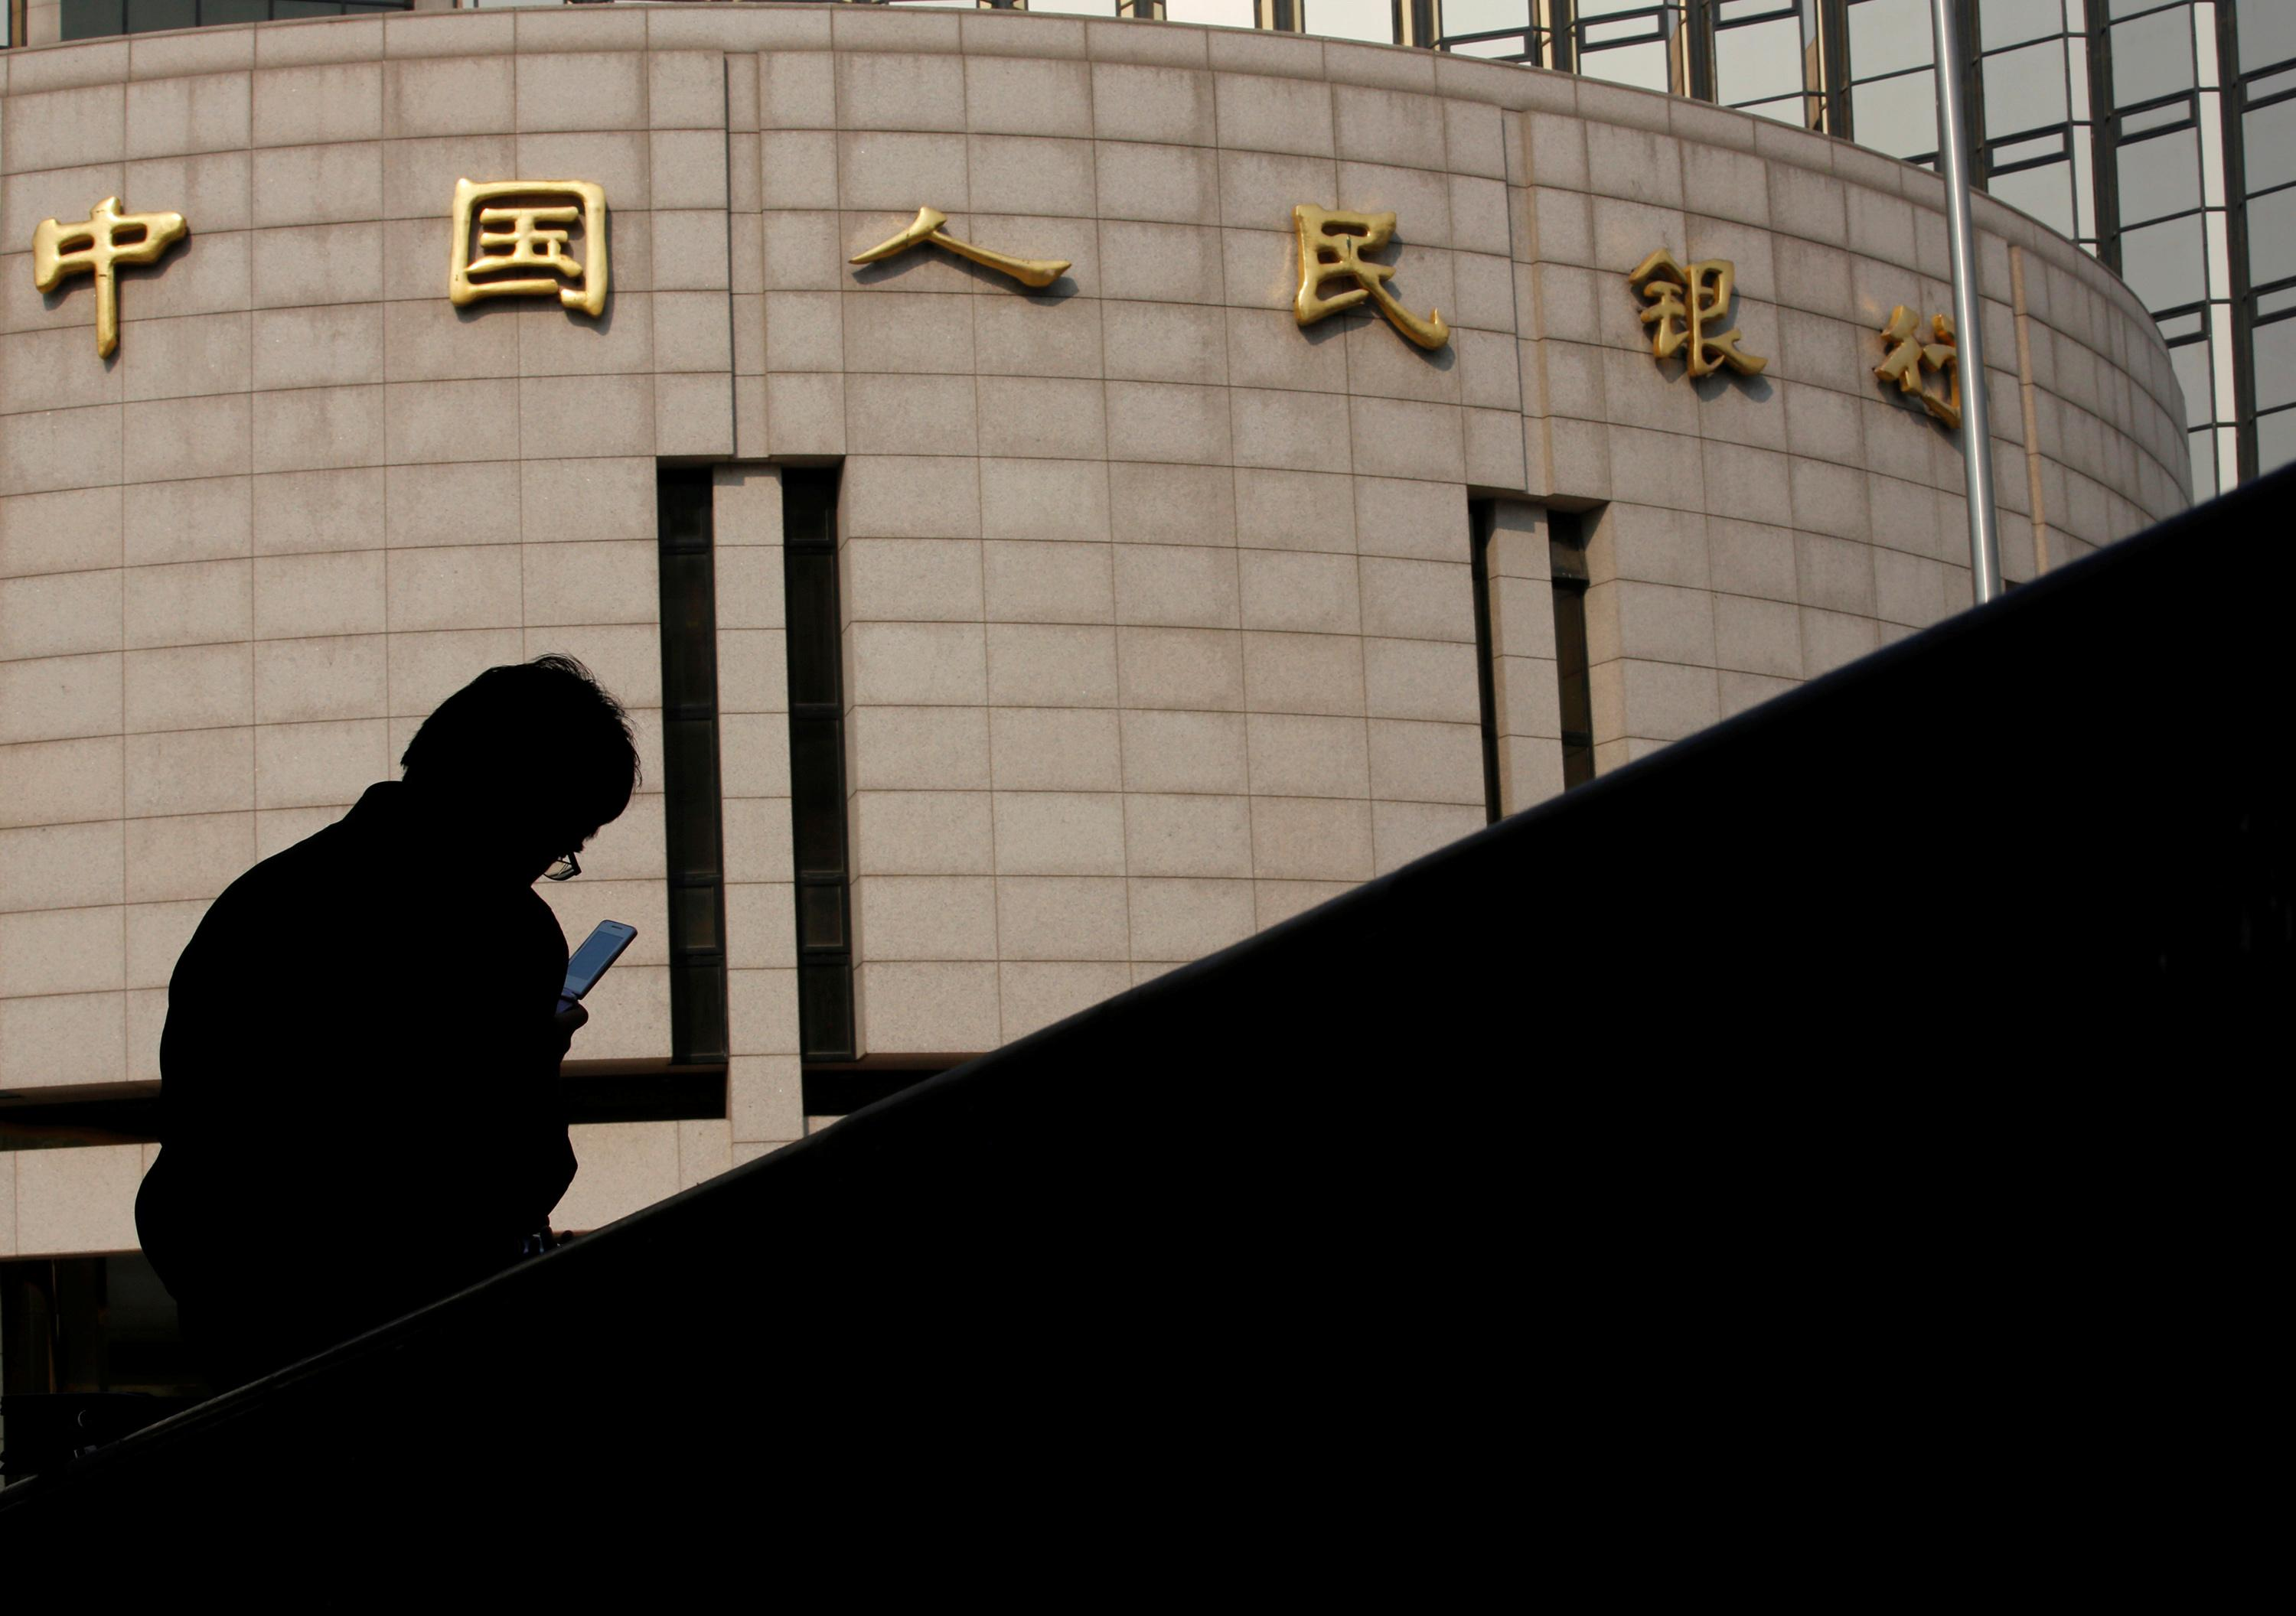 China trims lending rates with new benchmark, more cuts expected